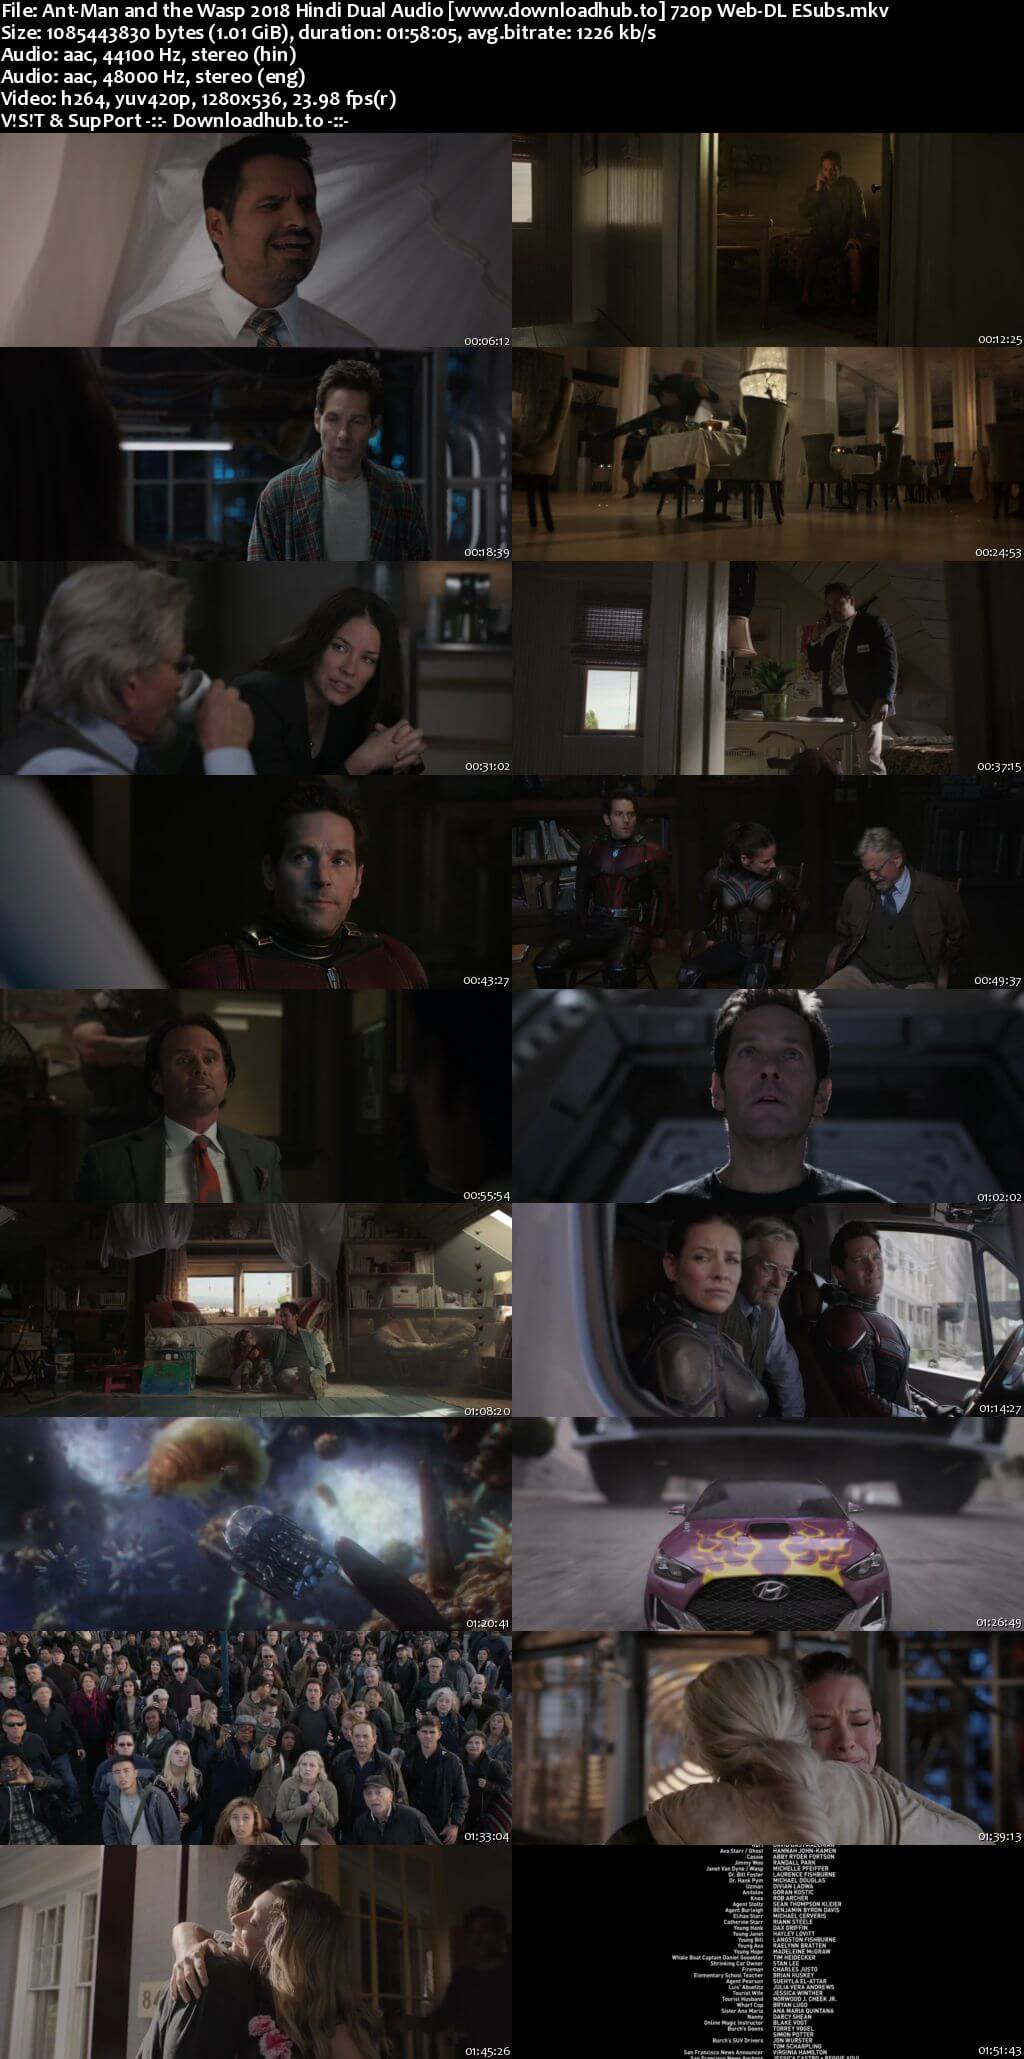 Ant-Man and the Wasp 2018 Hindi Dual Audio 720p Web-DL ESubs